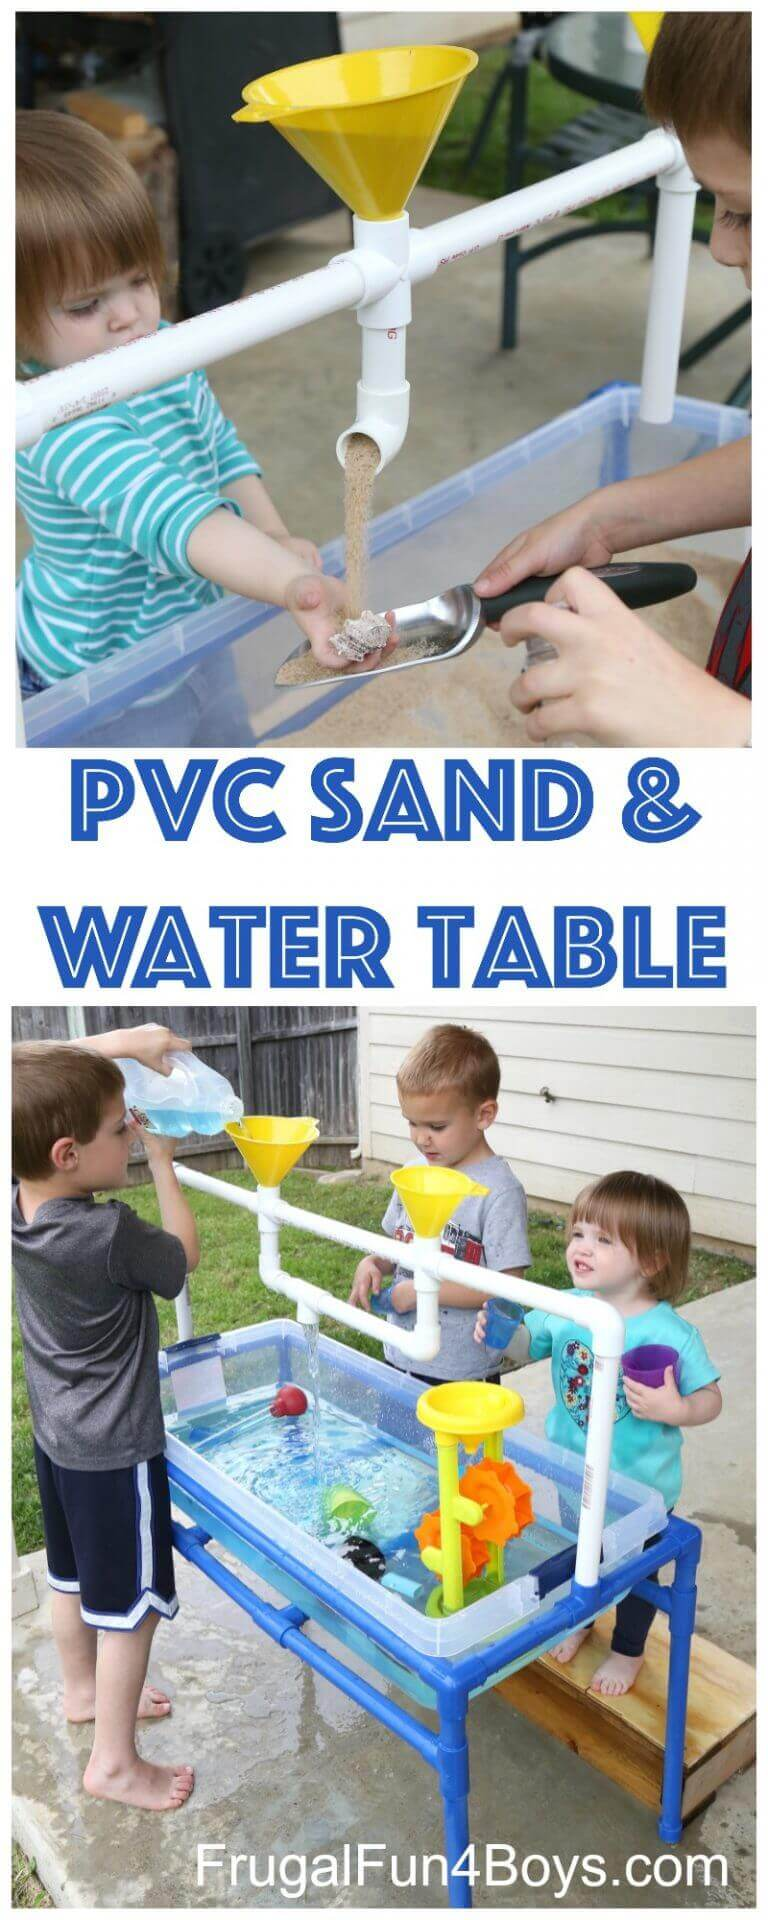 Dual Use Sensory Play Table for Sand and Water